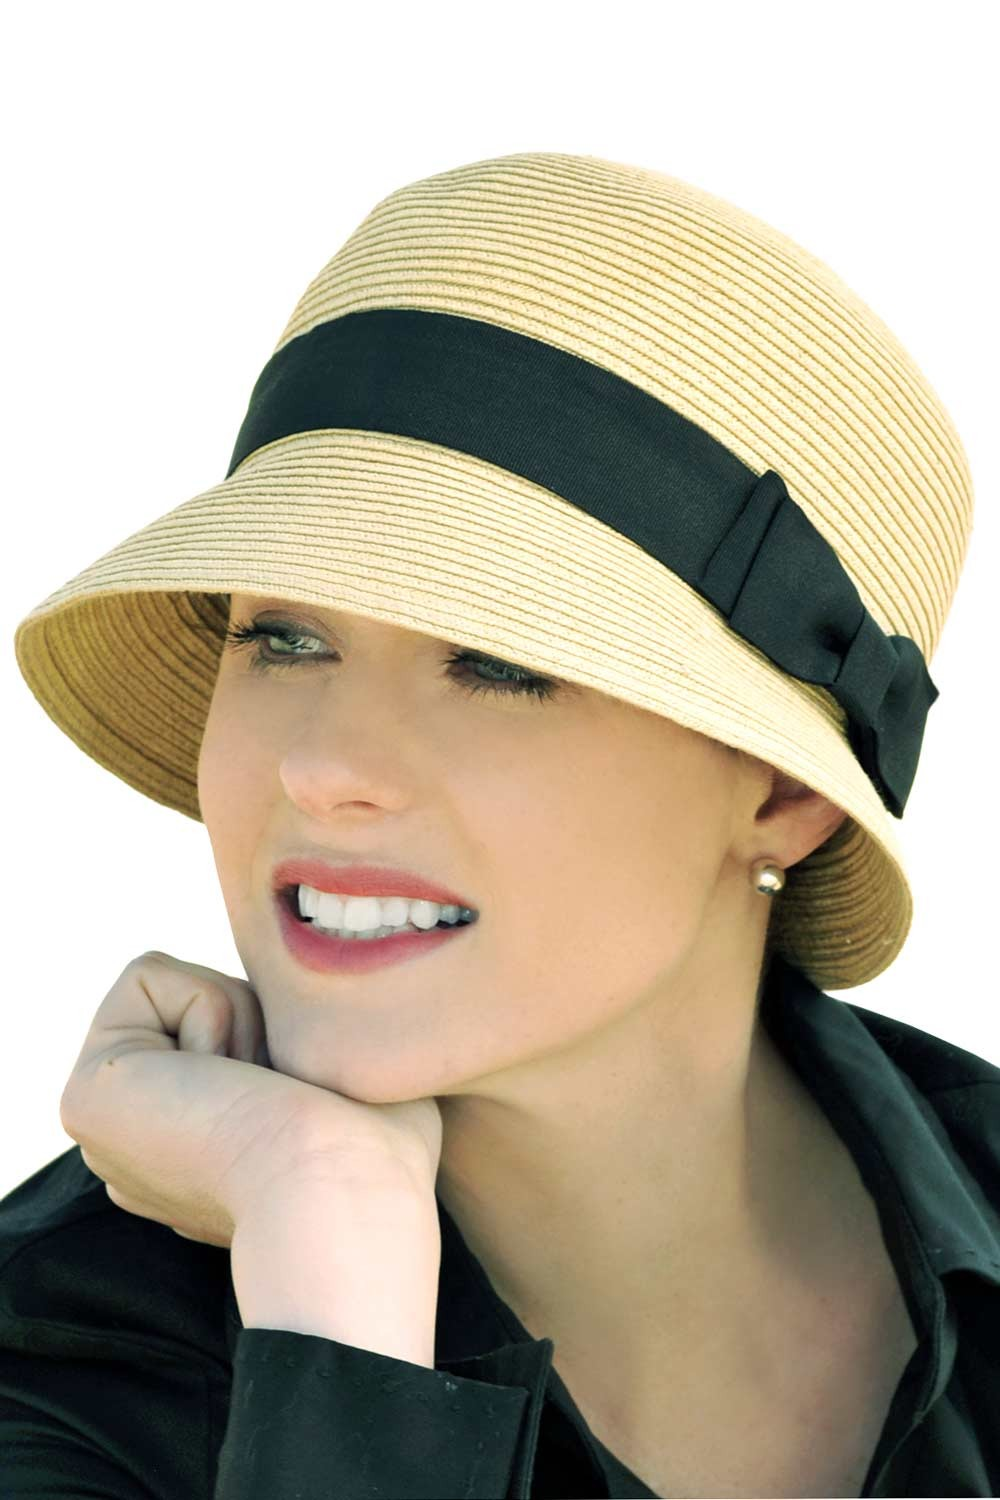 How to dress up with cloche hats